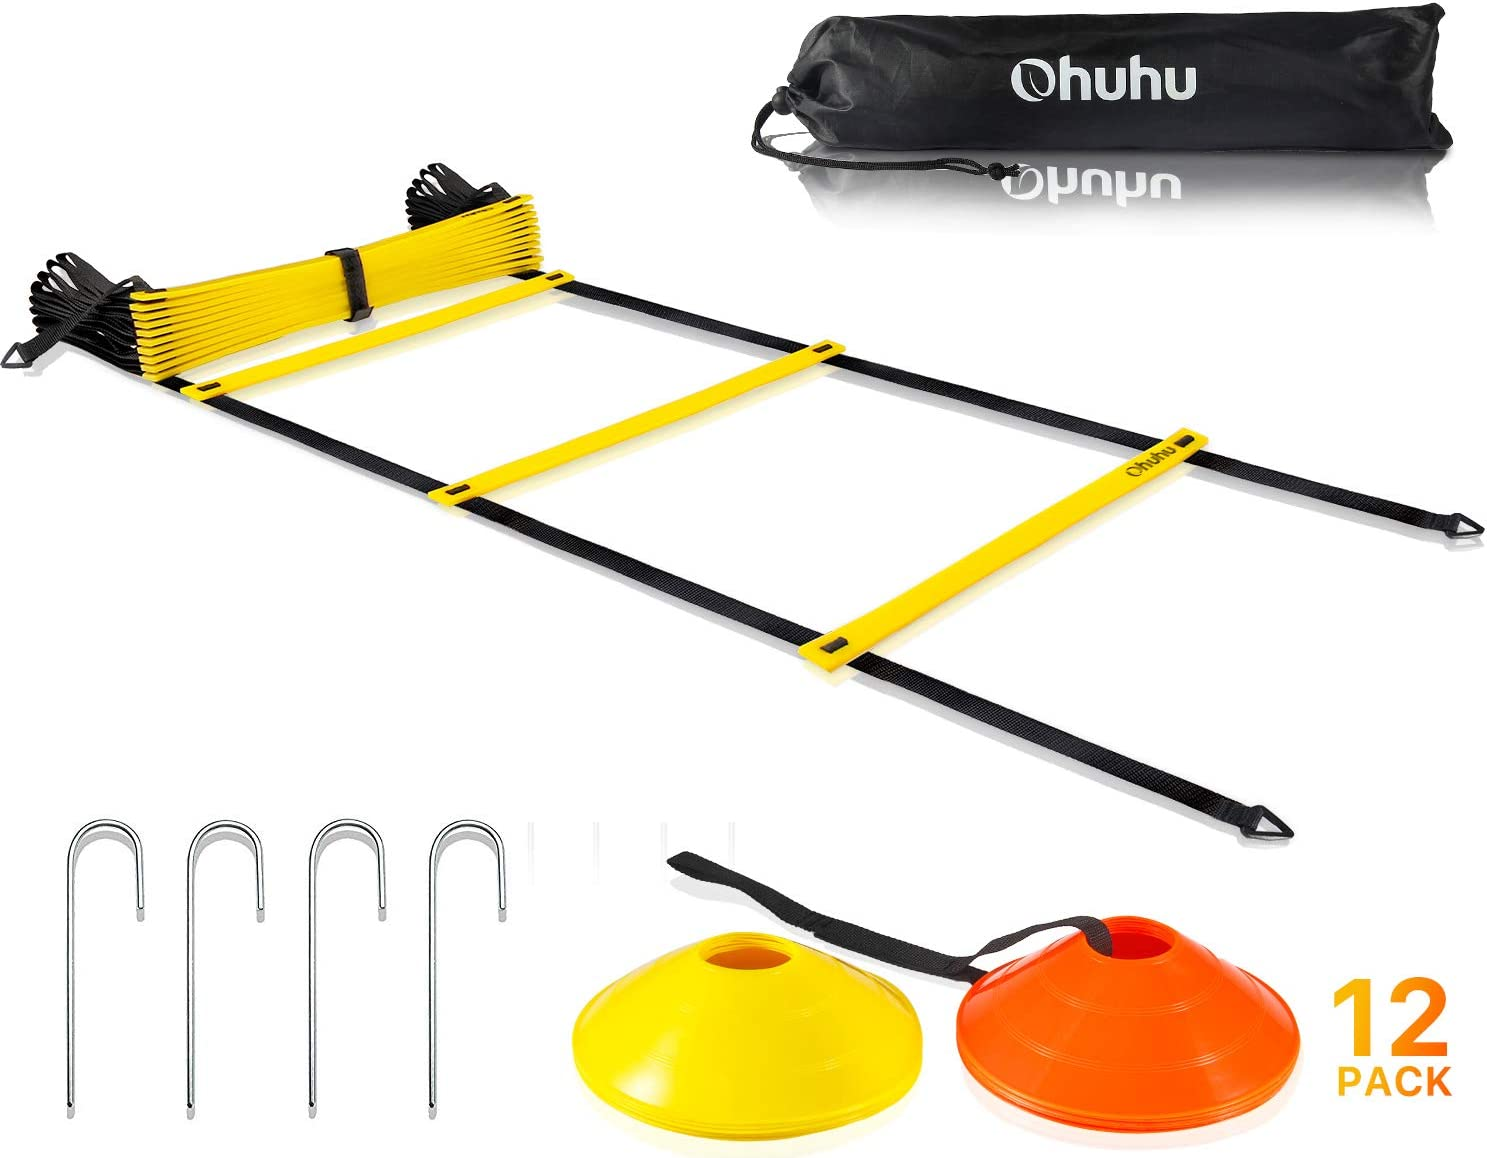 Ohuhu Speed Agility Training Set - Agility Ladder and Cones,4 Steel Stakes & Carrying Bag